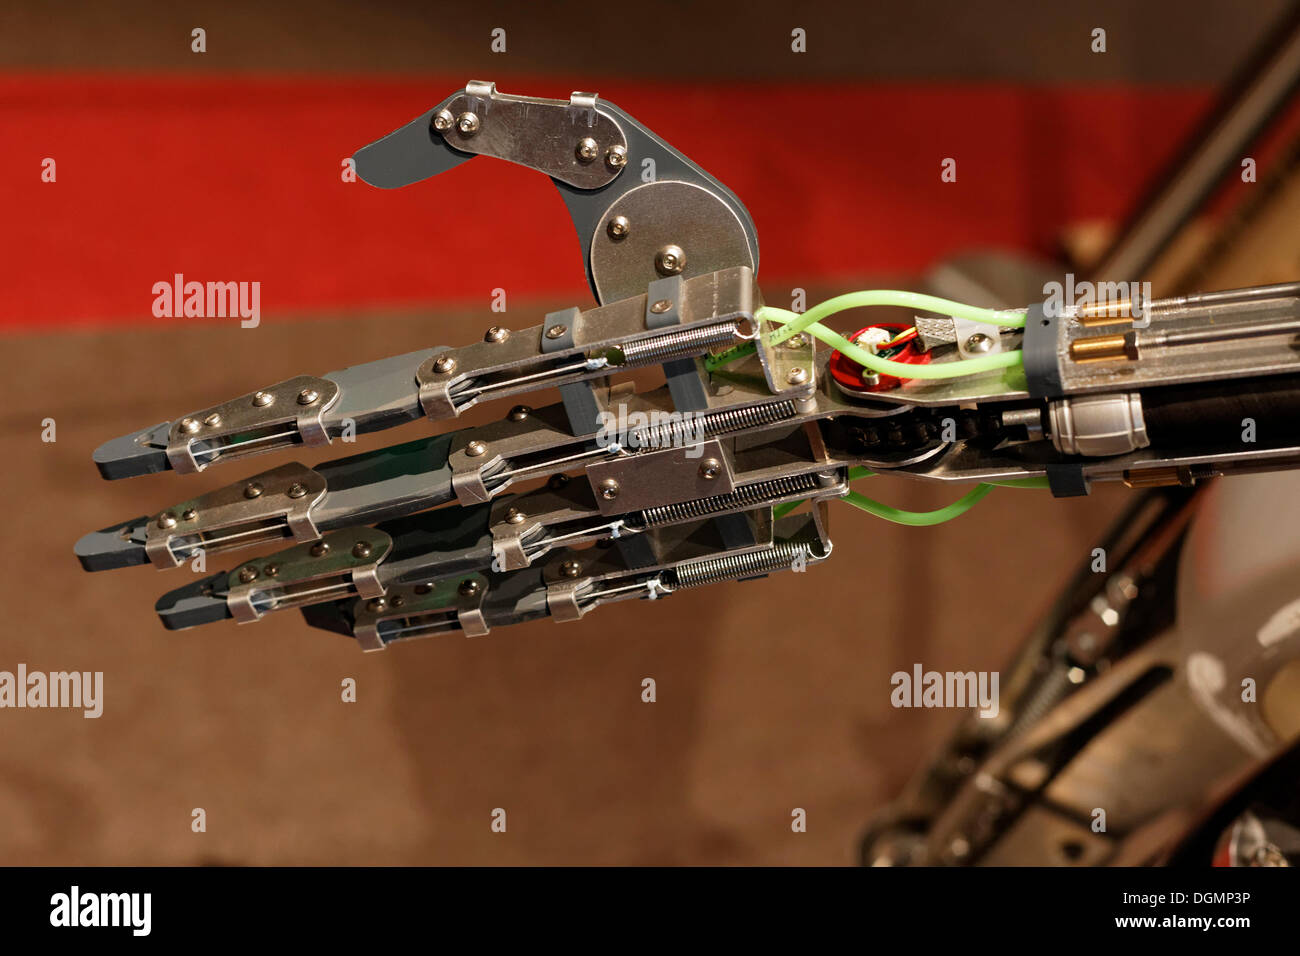 Outstretched hand of RoboThesbian, a humanoid robot by Engineered Arts, IdeenPark 2012, a technology and education summit - Stock Image